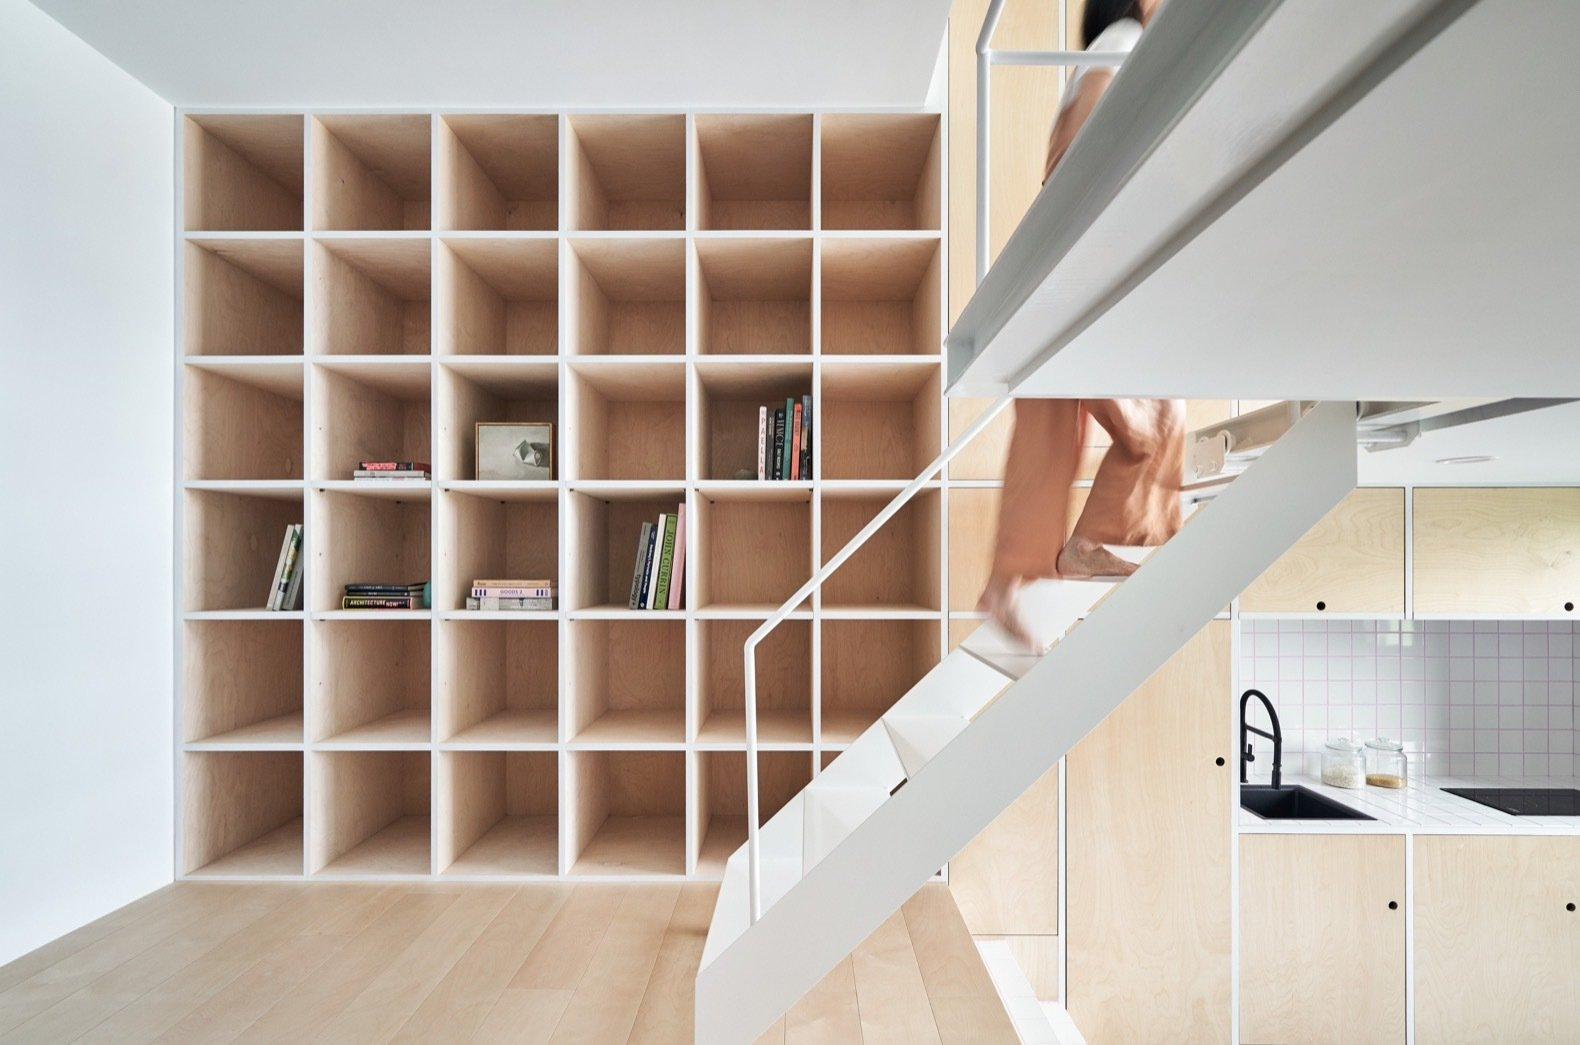 Storage and Shelves Storage takes up an entire wall in the dwelling.  Best Storage Shelves Photos from A Tiny Taipei Apartment Pursues Muji-Like Minimalism For $35K